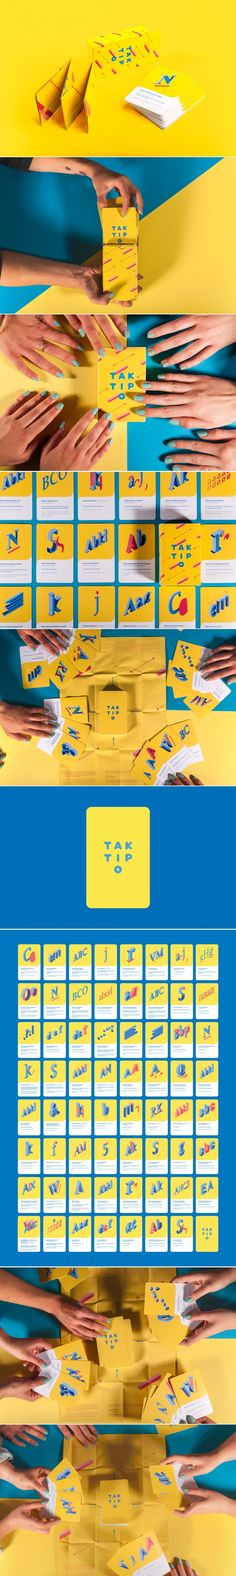 Learn The Basics of Typography With TAKTIPO — The Dieline | Packaging & Branding Design & Innovation News